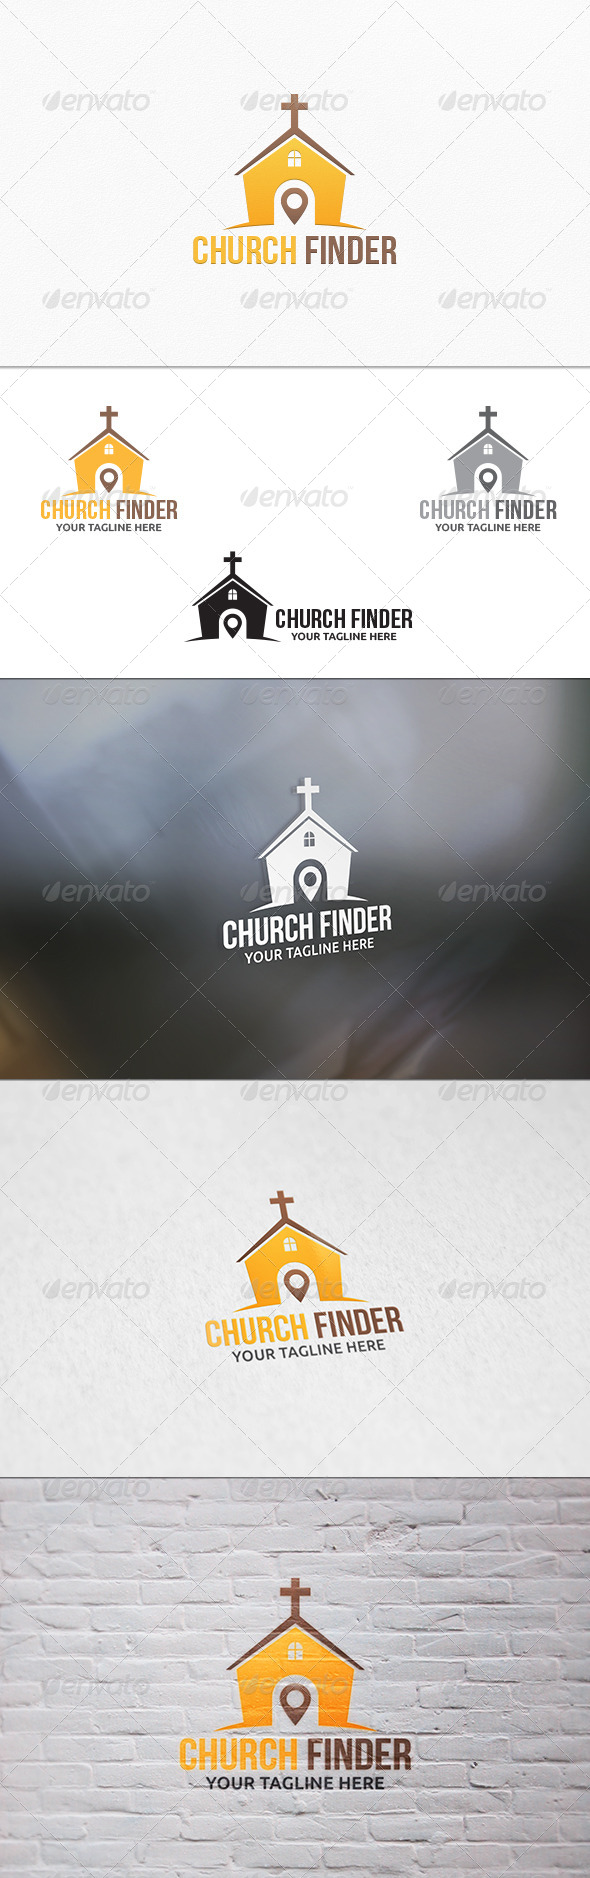 Church Finder V2 - Logo Template - Buildings Logo Templates